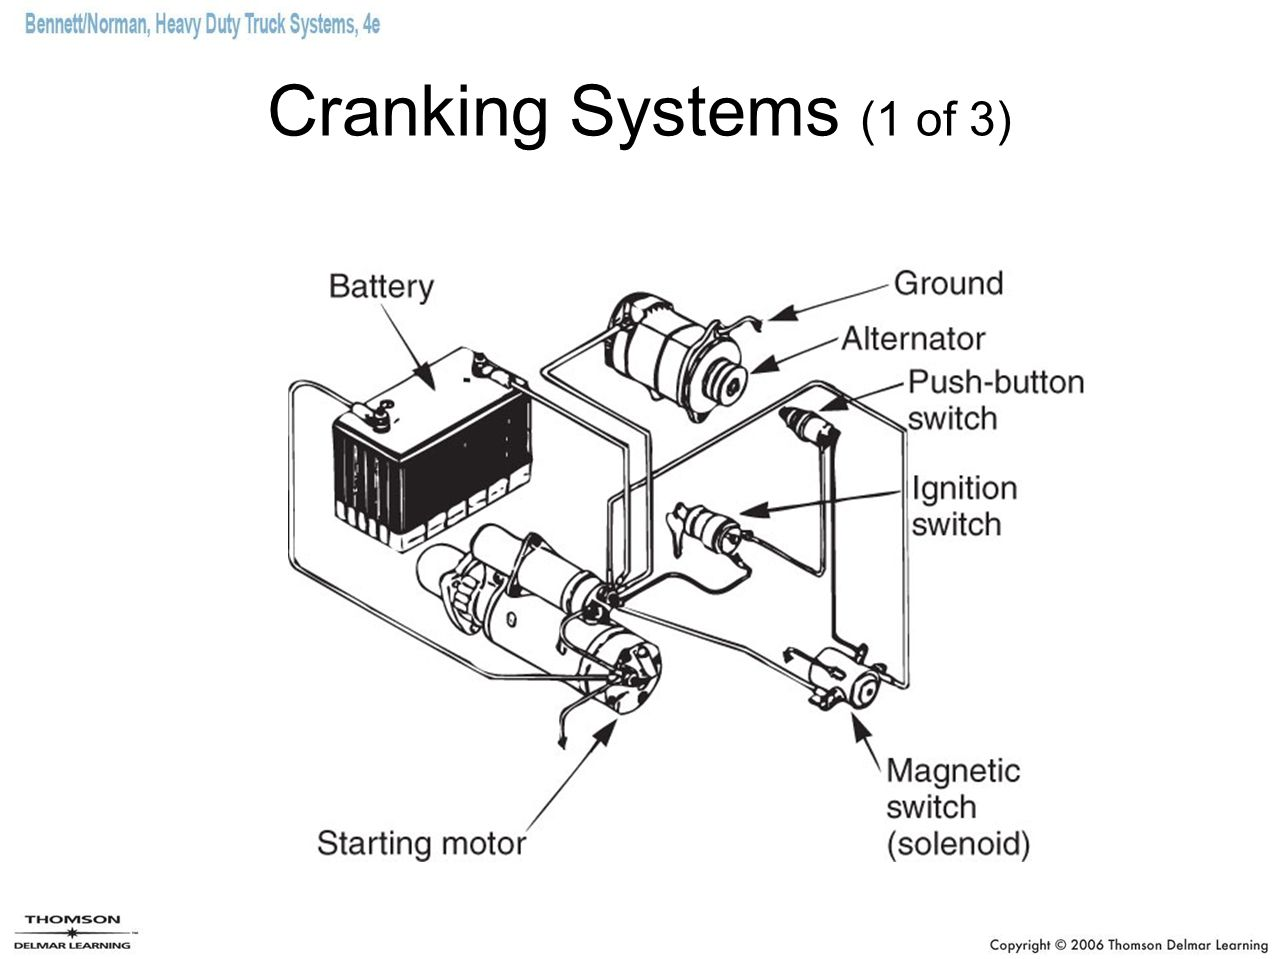 Chapter 9 Cranking Systems Ppt Video Online Download Growler Wiring Diagram 4 1 Of 3